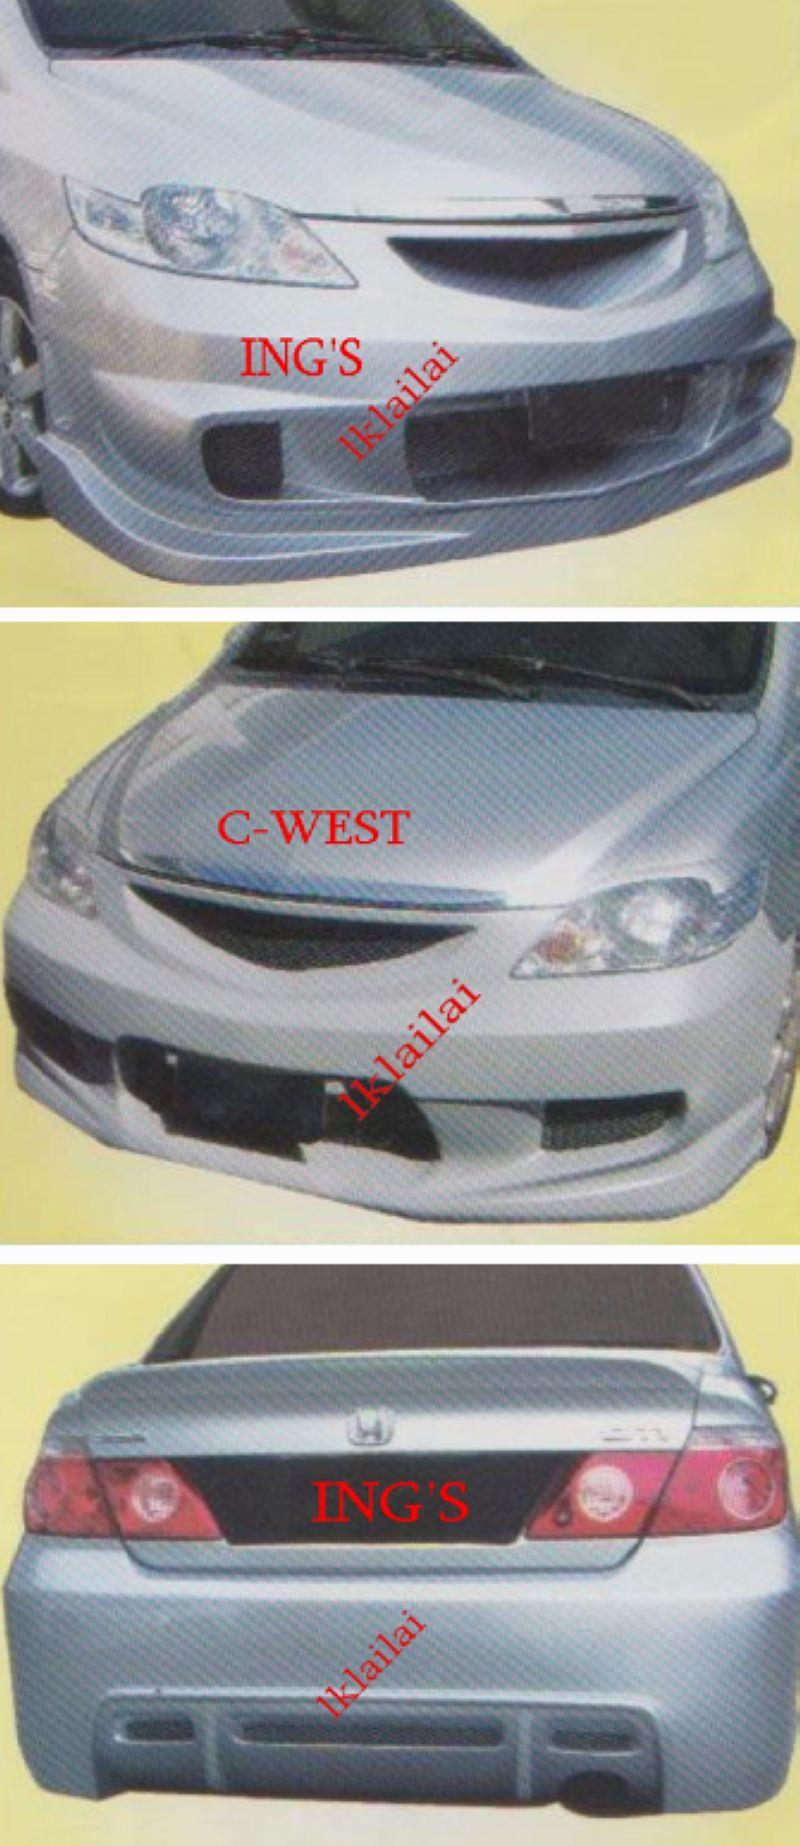 HONDA City '06-08 Front / Rear Bumper [ING'S / C-WEST] [FIBER]